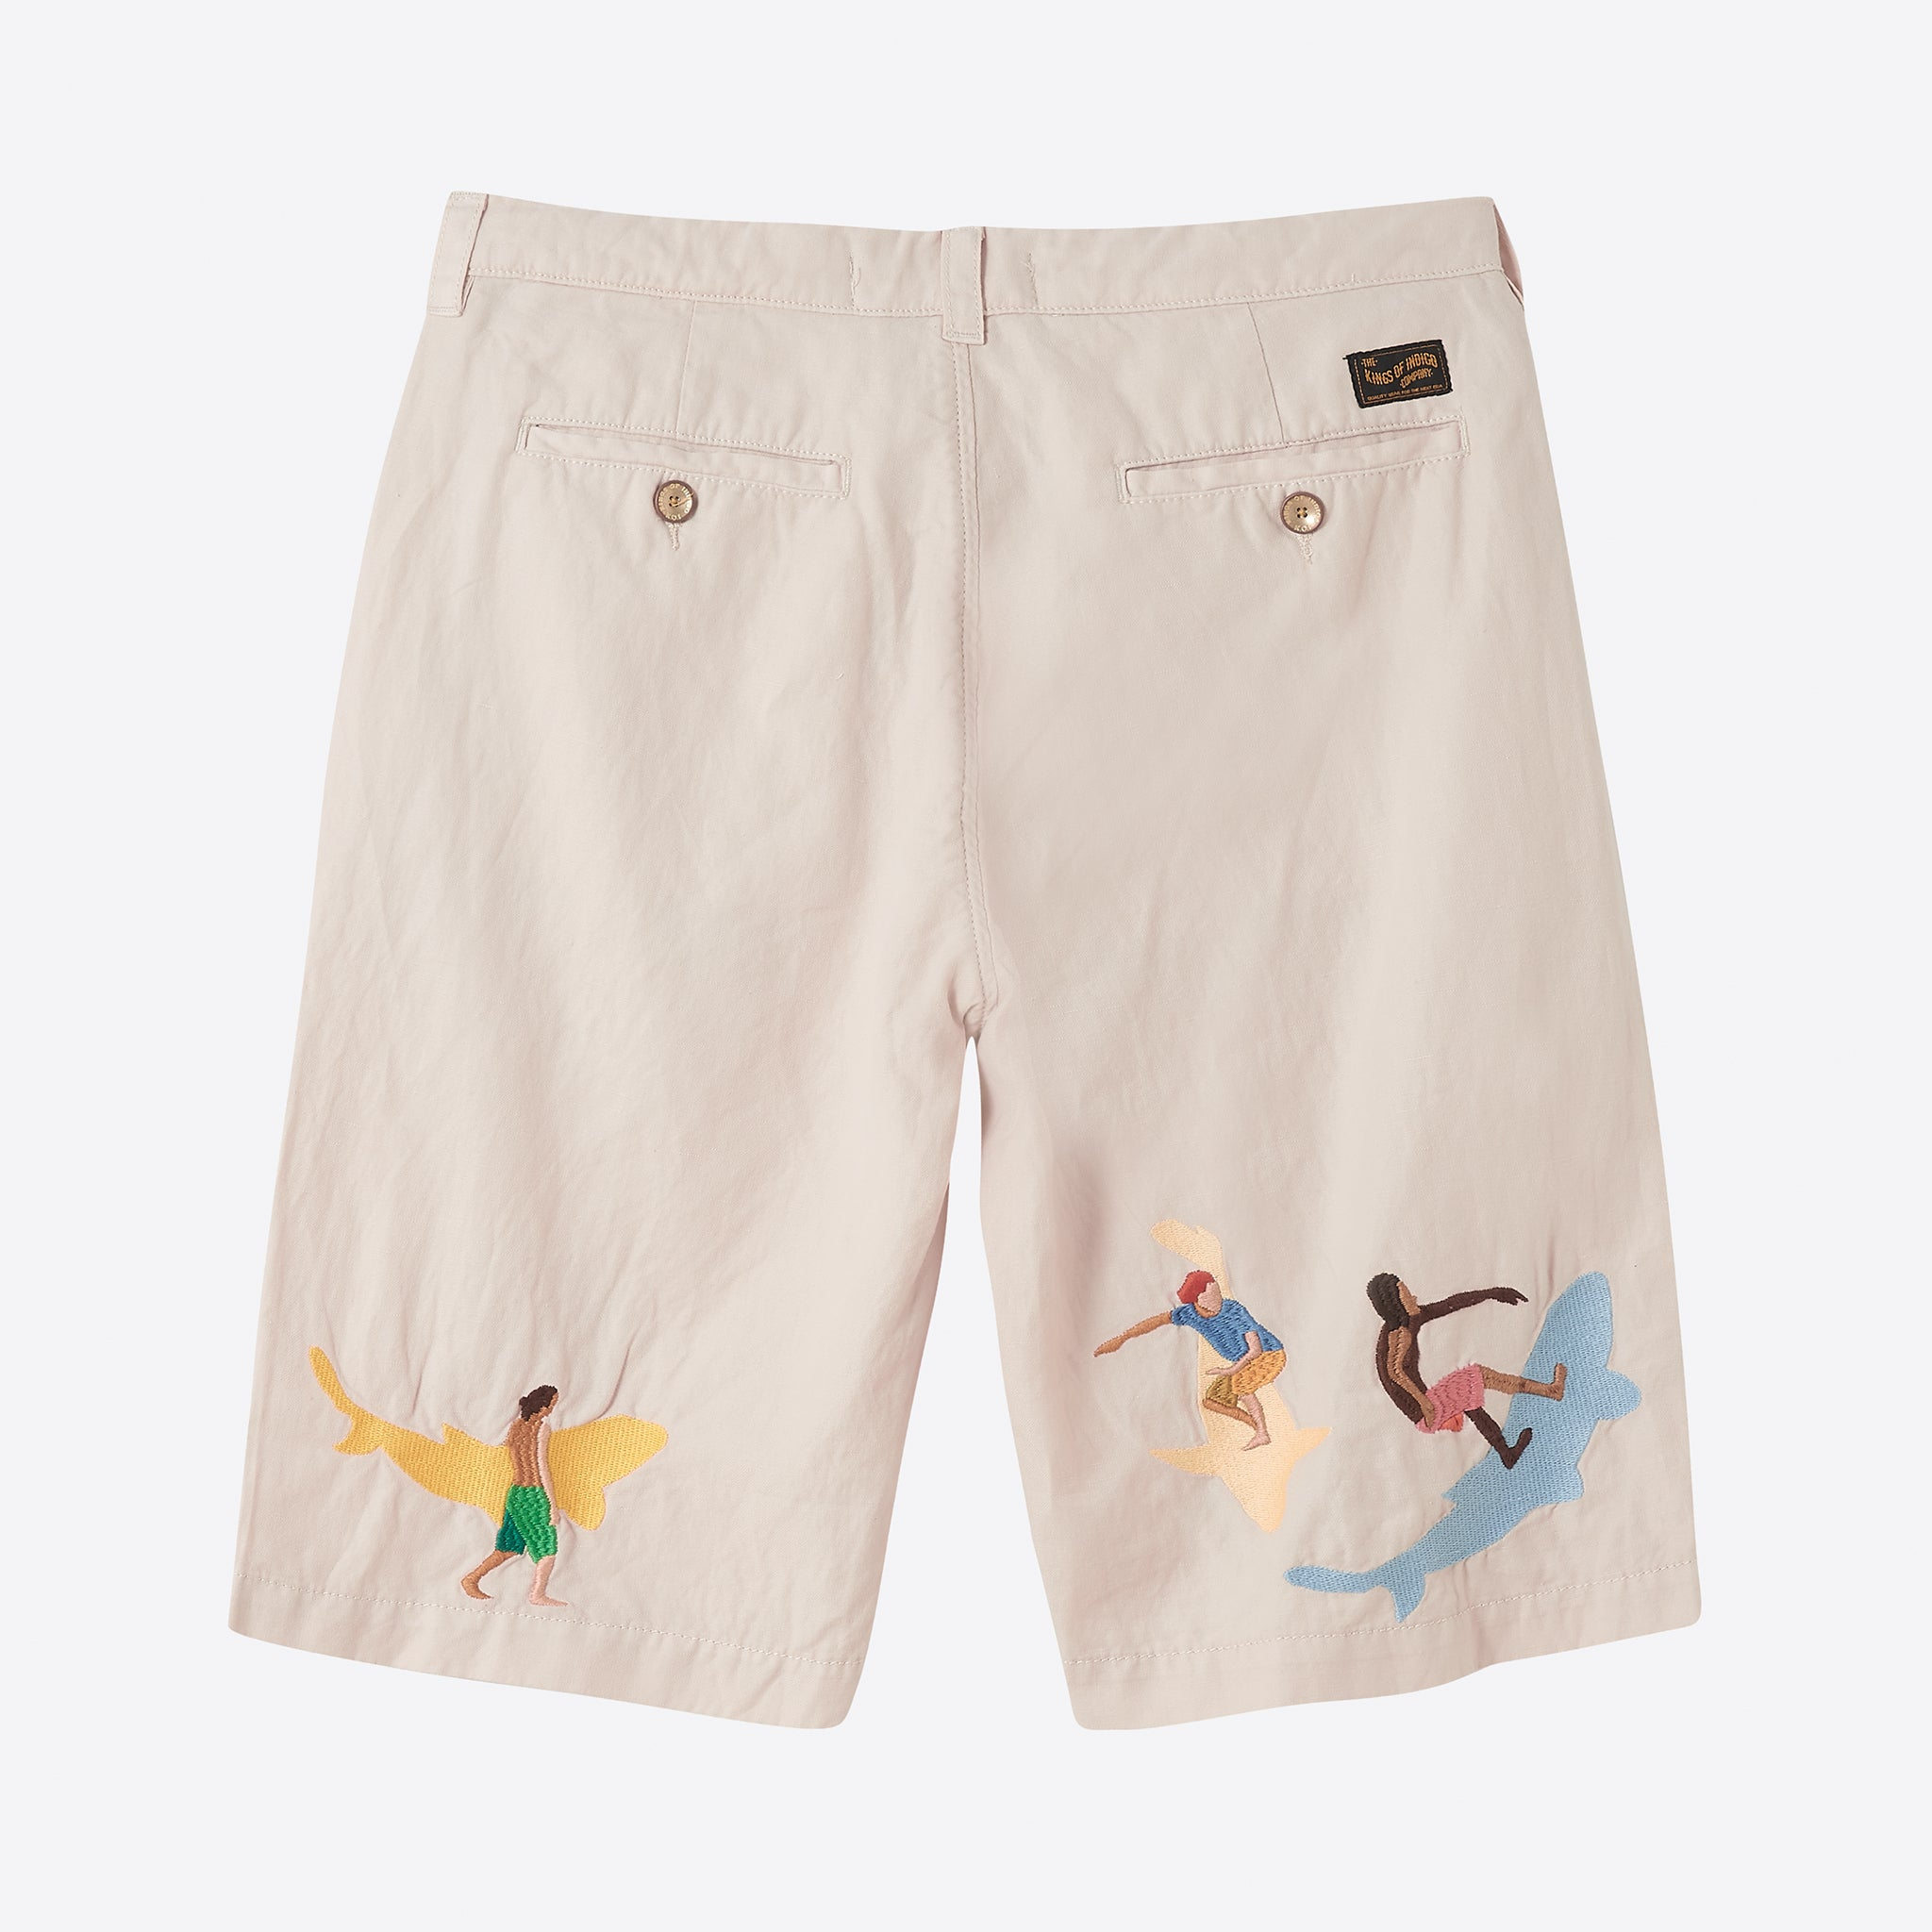 Kings Of Indigo Cronus Shorts in Ecru Koinobori Surf